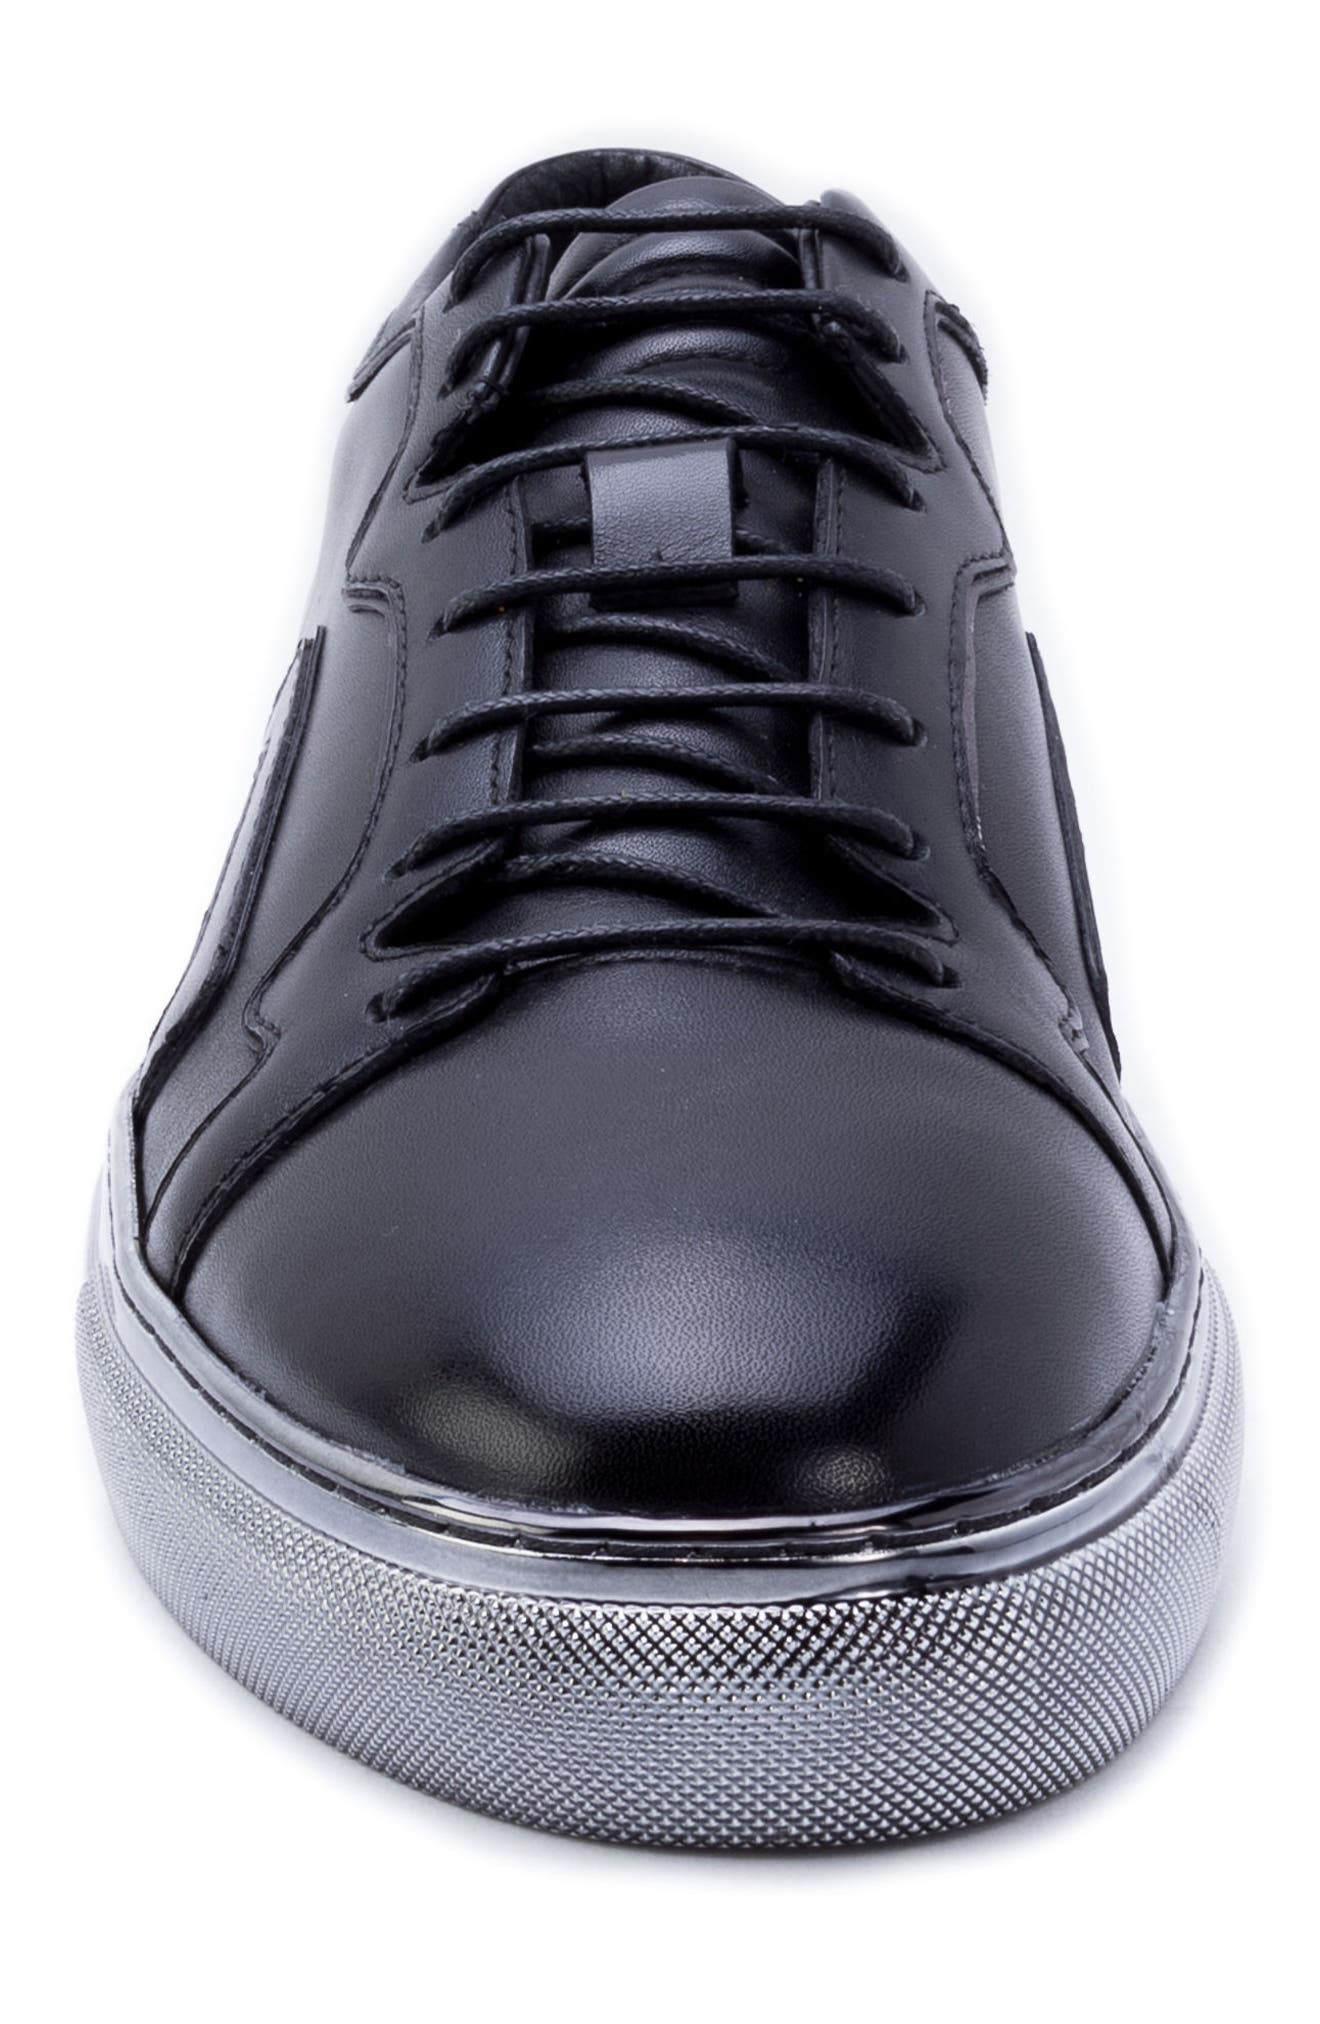 Caine Sneaker,                             Alternate thumbnail 4, color,                             BLACK LEATHER